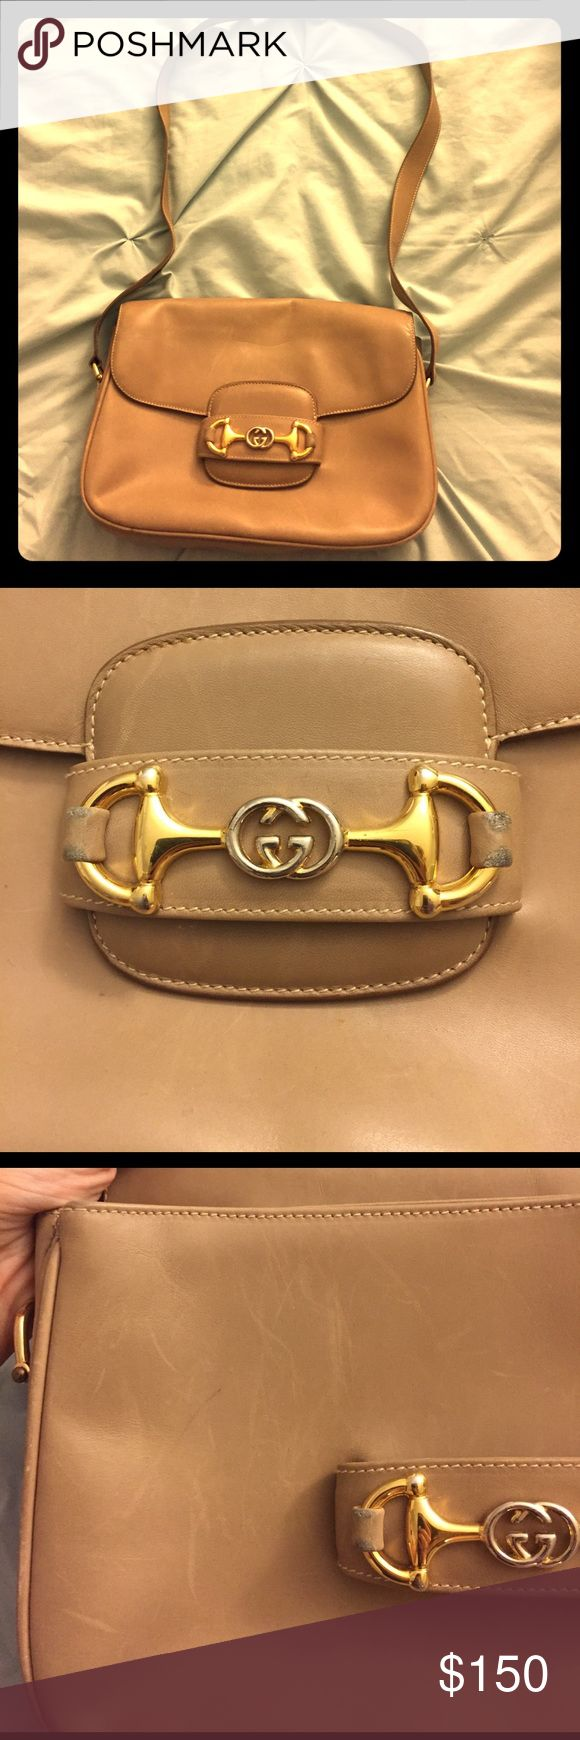 Vintage Gucci purse Tan vintage authentic Gucci purse. Gold hardware. Great condition, some scratches on leather. Strap is adjustable Gucci Bags Shoulder Bags